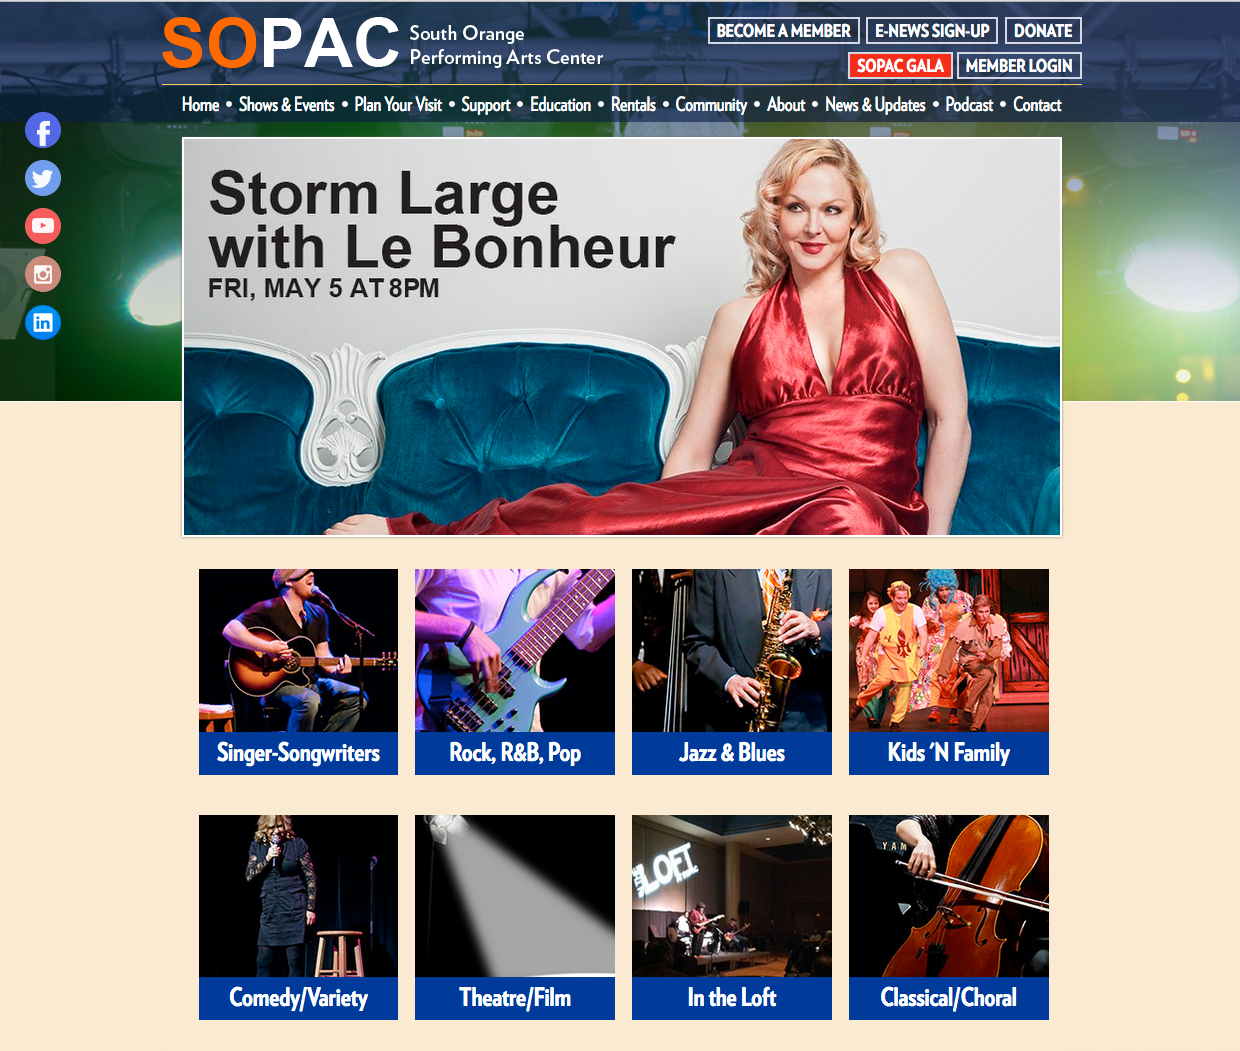 SOPAC Shows and Events page